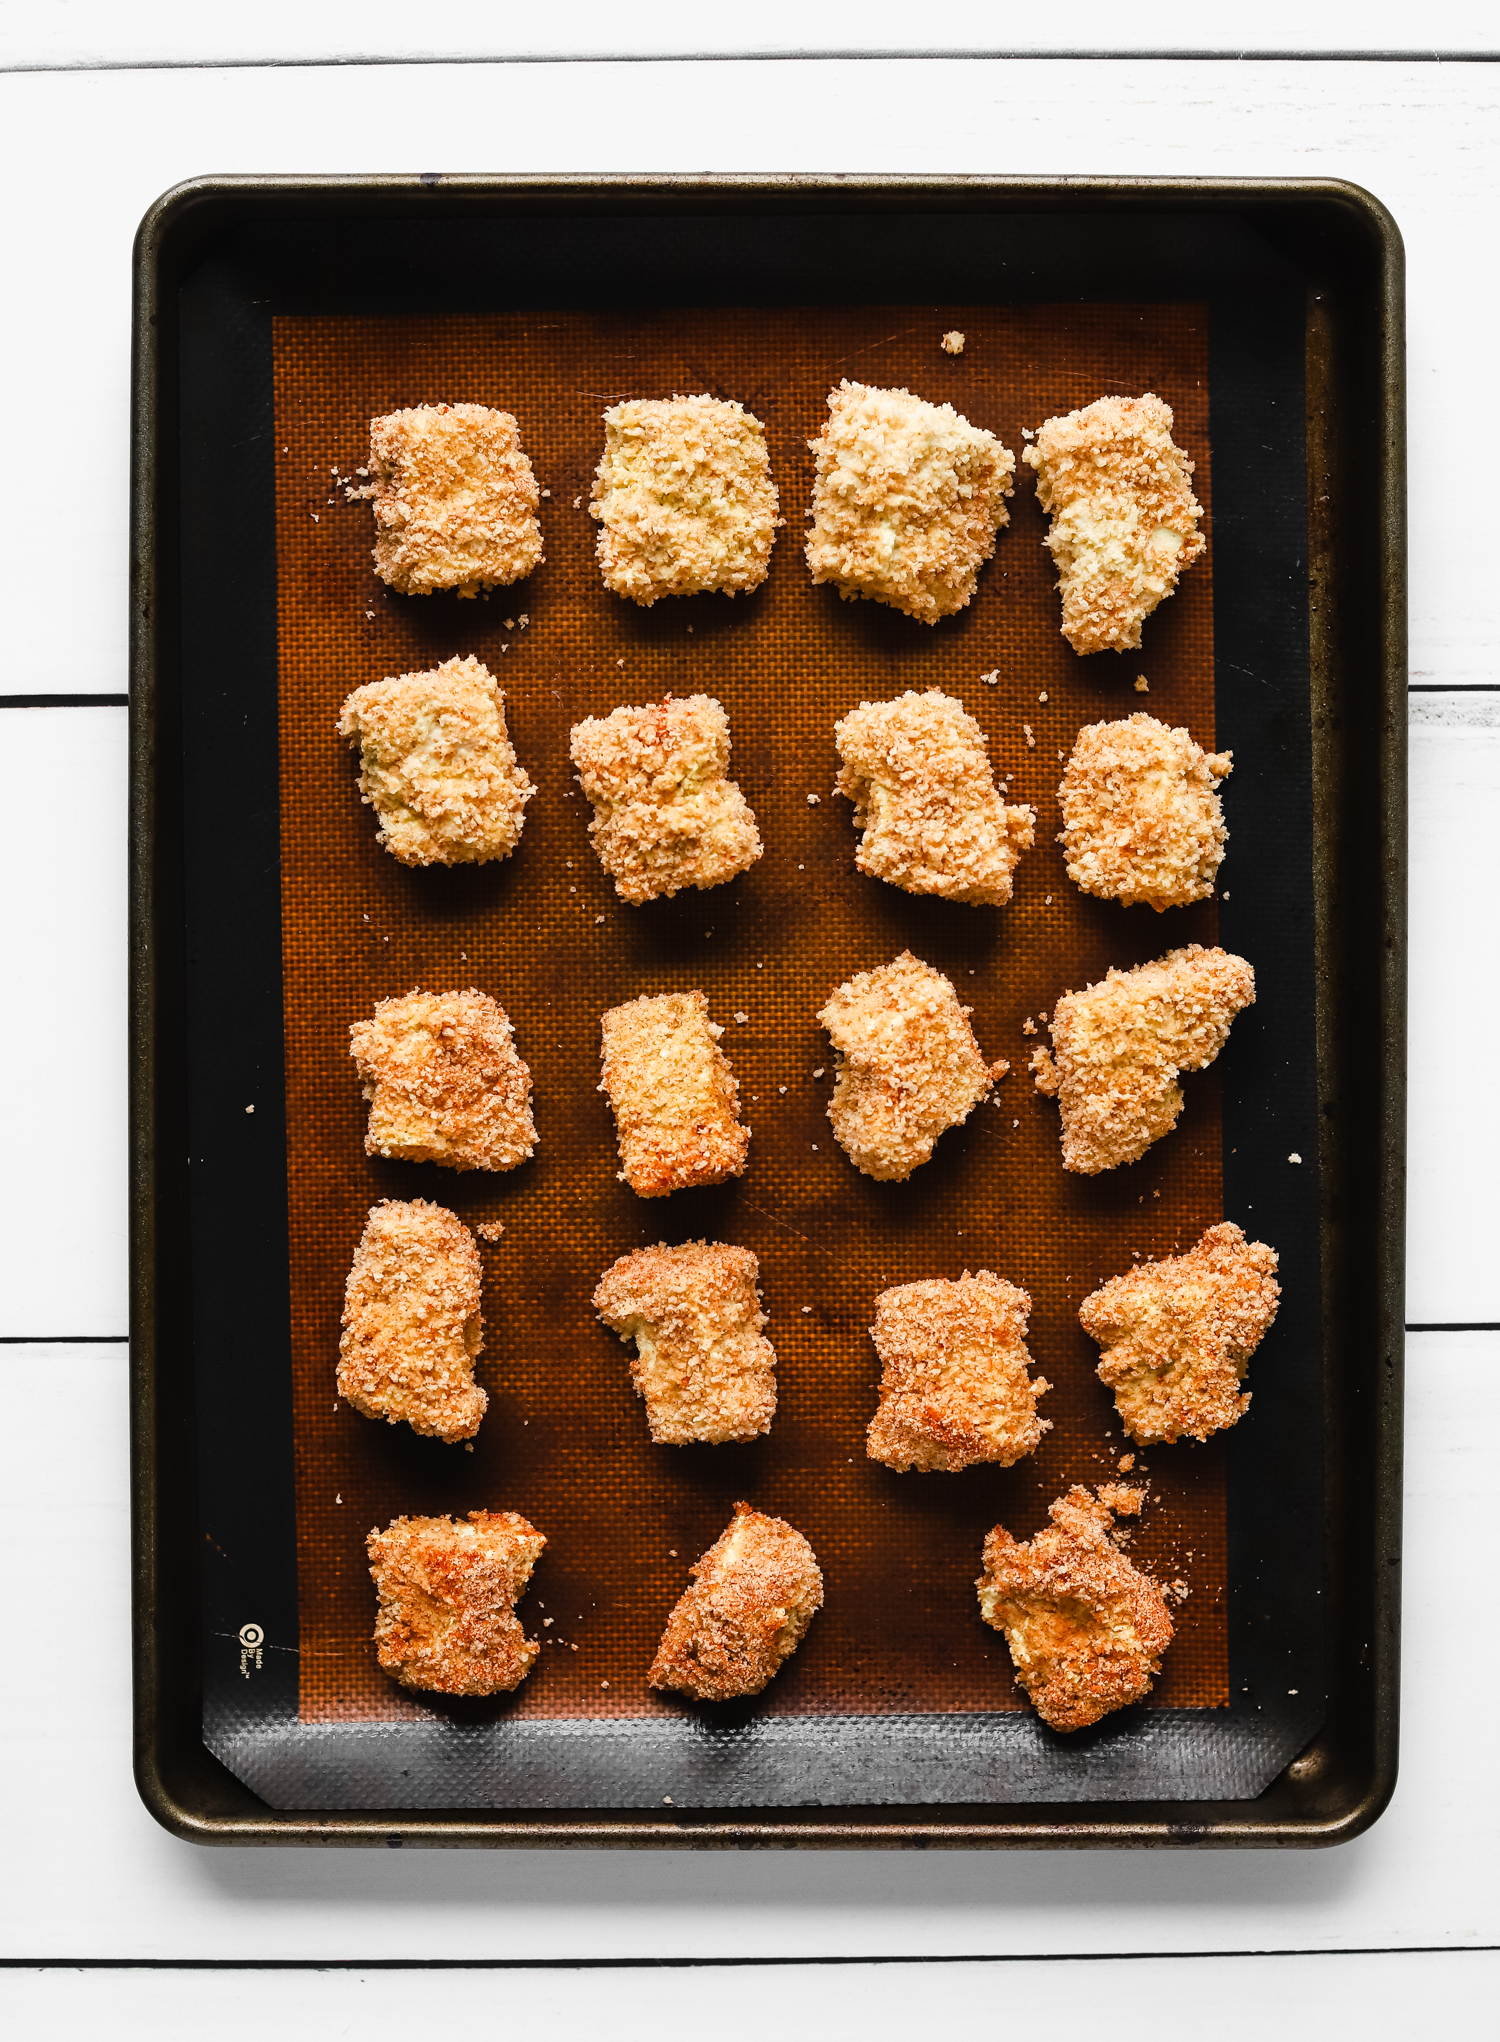 Unbaked breaded tofu chicken nuggets on a baking tray lined with a reusable silicone mat.